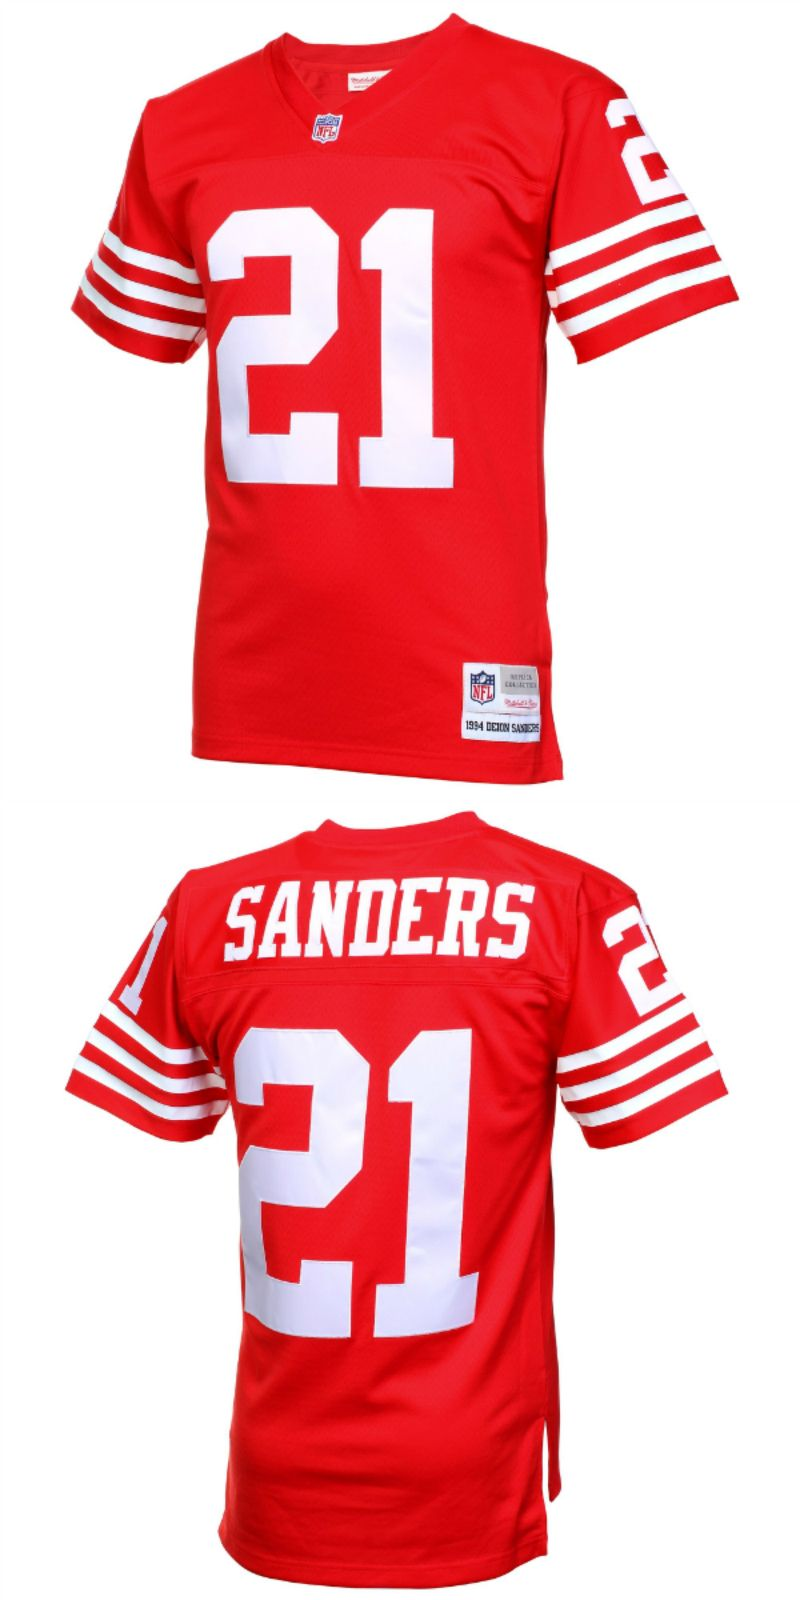 separation shoes 4b6d5 8717c UP TO 70% OFF. Deion Sanders San Francisco 49ers Mitchell ...